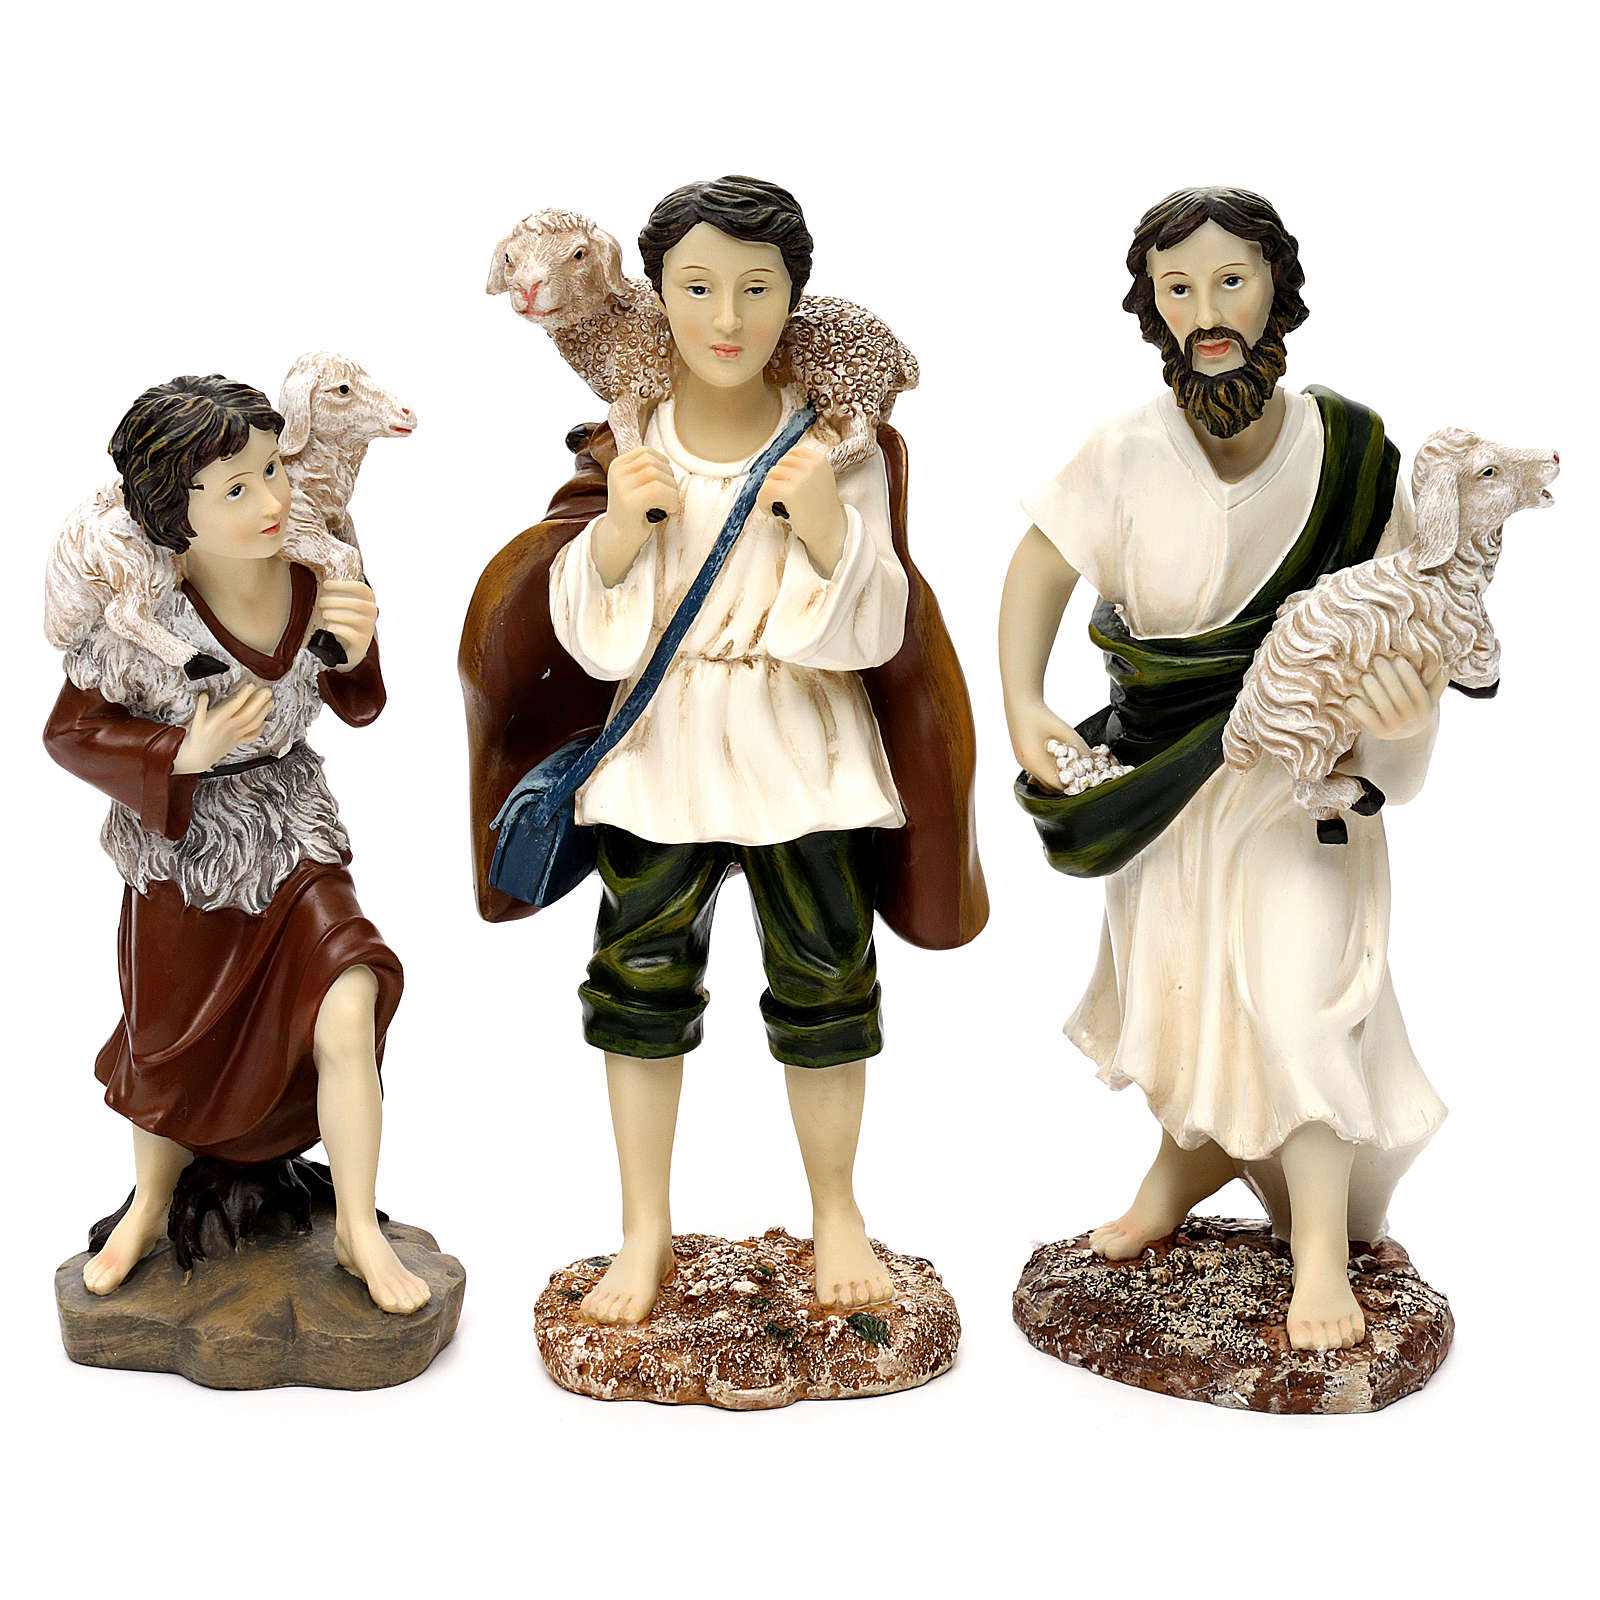 Shepherds with sheep, 30 cm in colored resin 3 pcs set 3